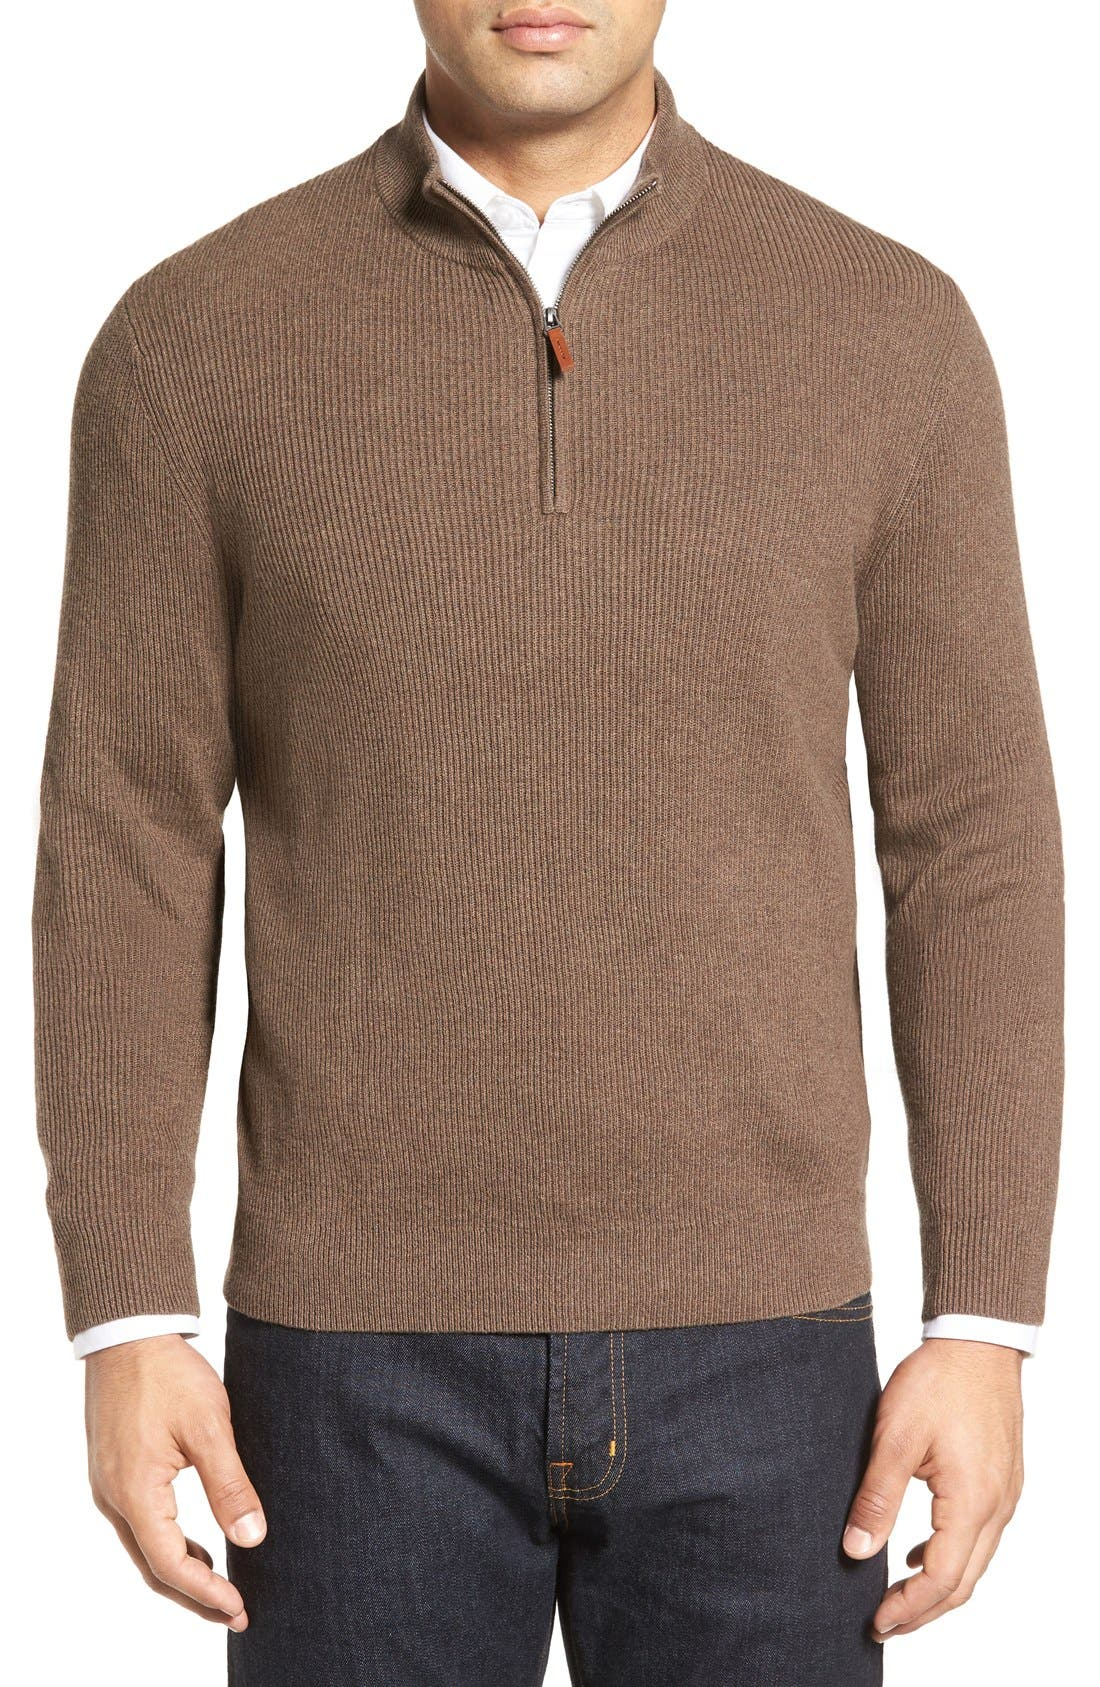 Main Image - Nordstrom Men's Shop Cotton & Cashmere Rib Knit Sweater (Regular & Tall)